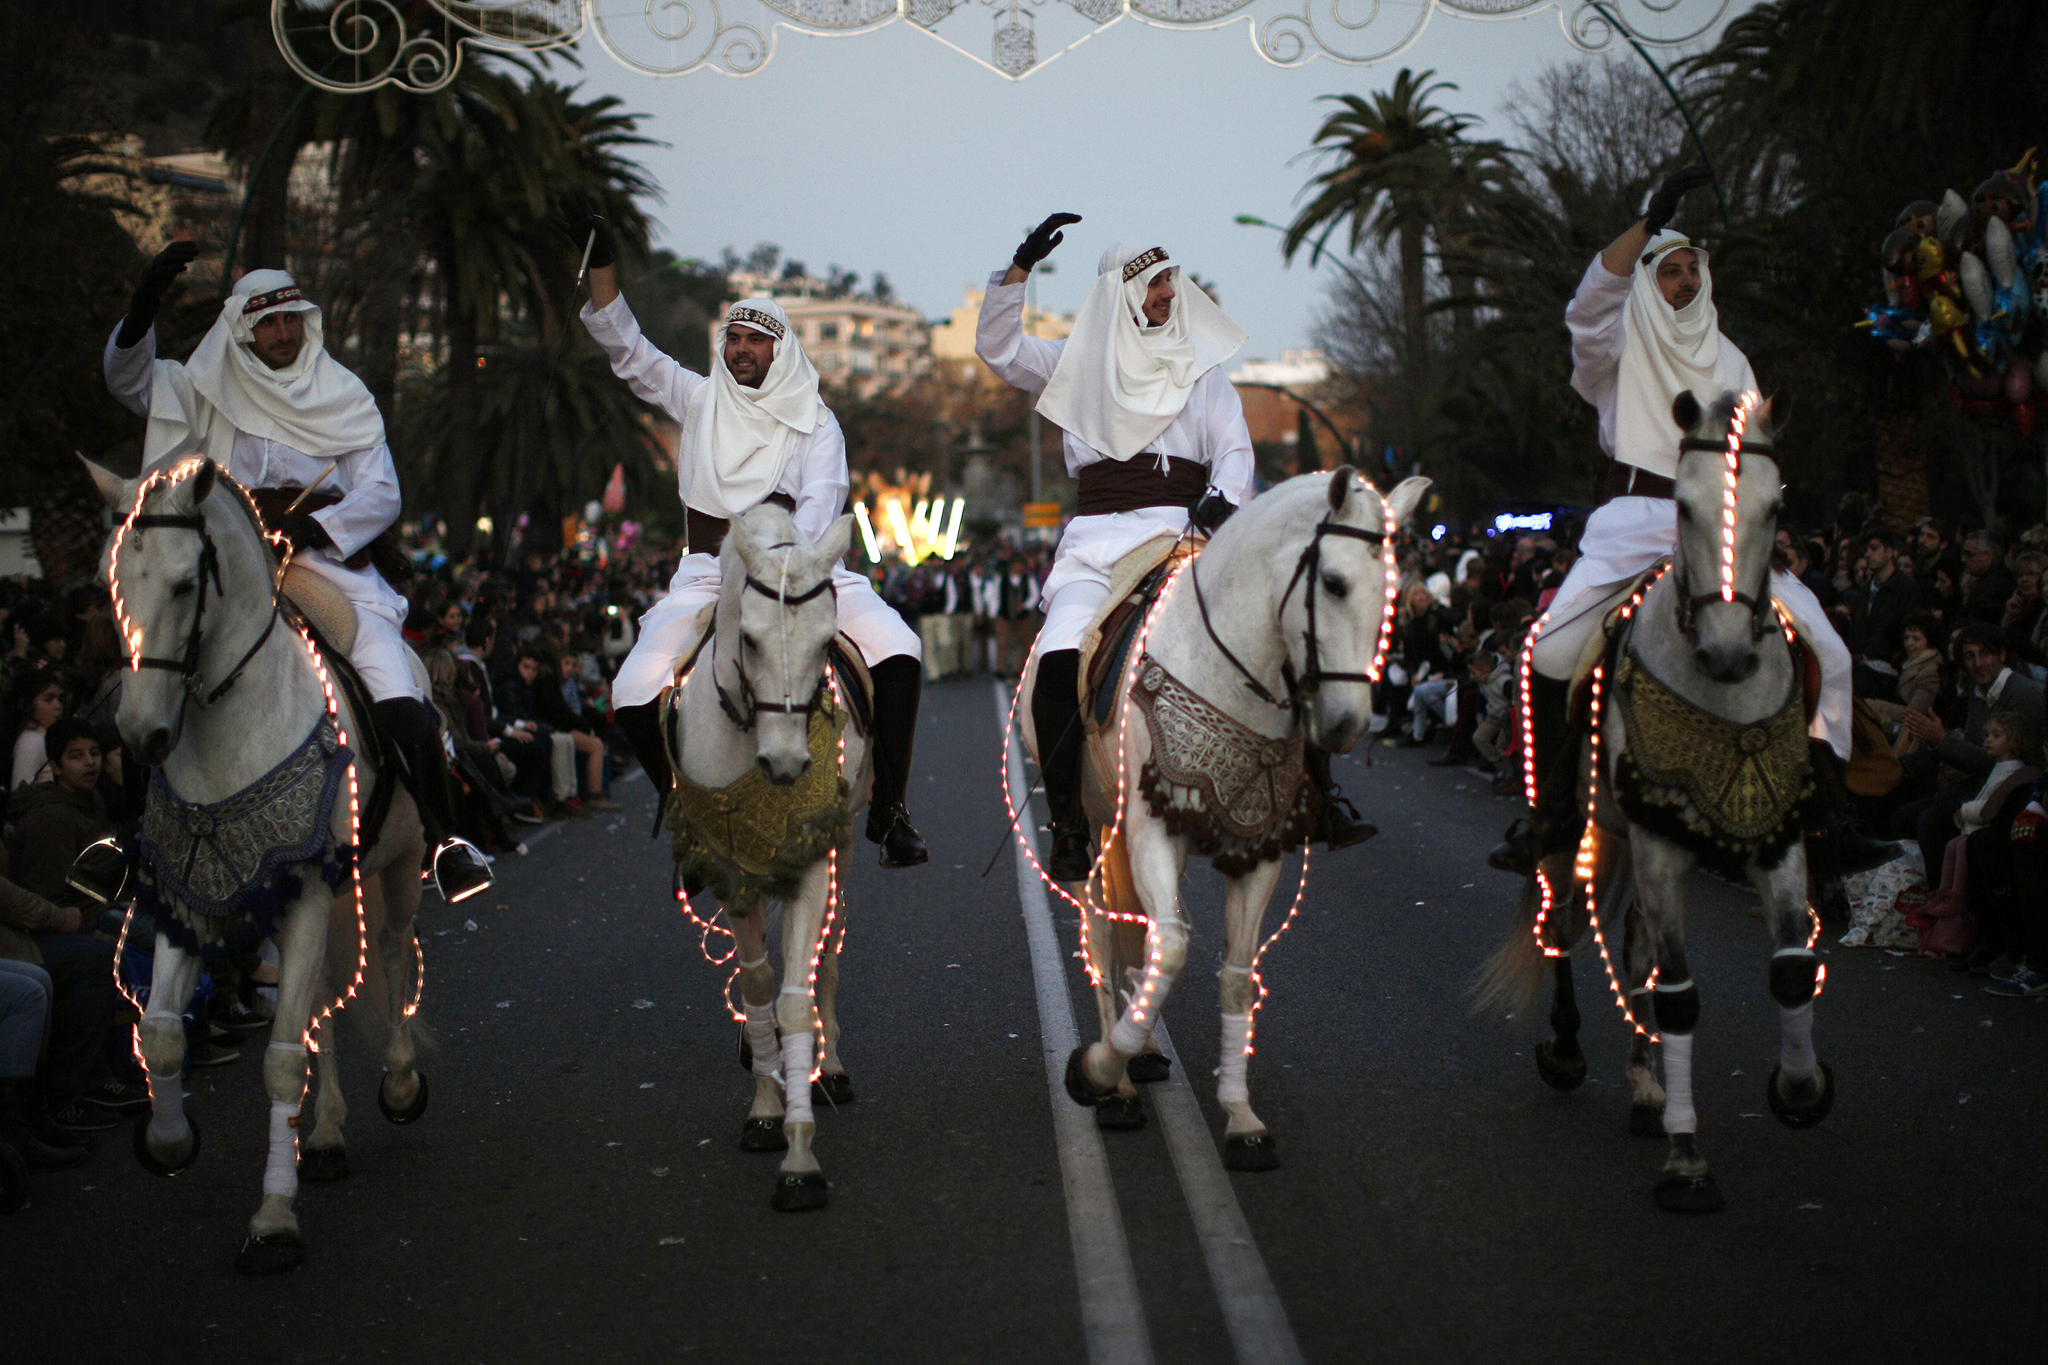 Horse riders wave to the crowd during the traditional Epiphany parade in Malaga...REFILE - CORRECTING YEAR  Horse riders wave to the crowd during the traditional Epiphany parade in Malaga, southern Spain January 5, 2015. Traditionally, children in Spain receive their presents delivered by the Three Wise Men on the morning of January 6 during the Christian holiday of the Epiphany. REUTERS/Jon Nazca (SPAIN - Tags: SOCIETY ANIMALS RELIGION)